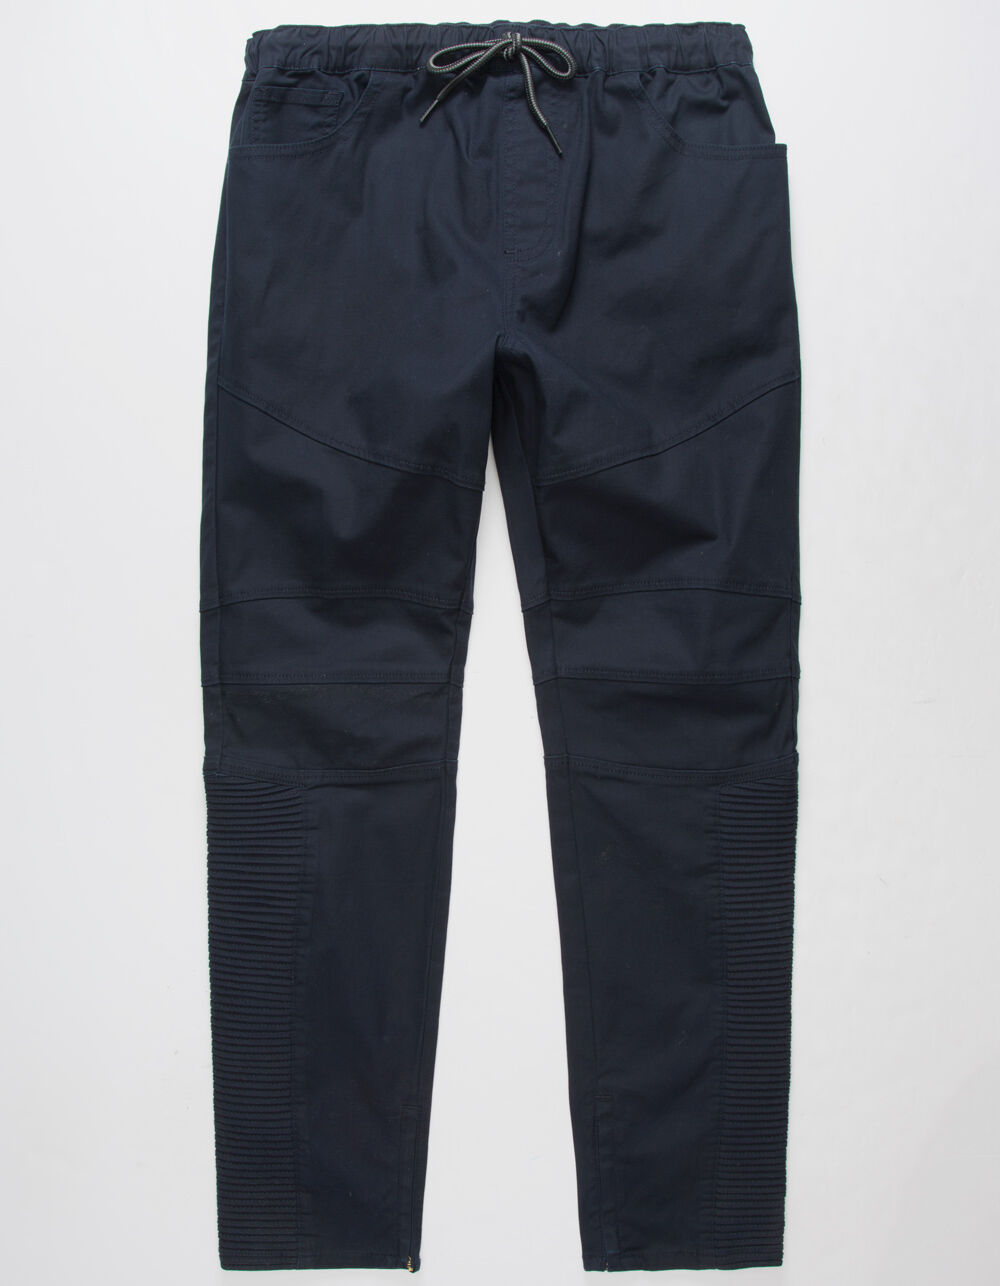 EAST POINTE Moto Knee Twill Jogger Pants